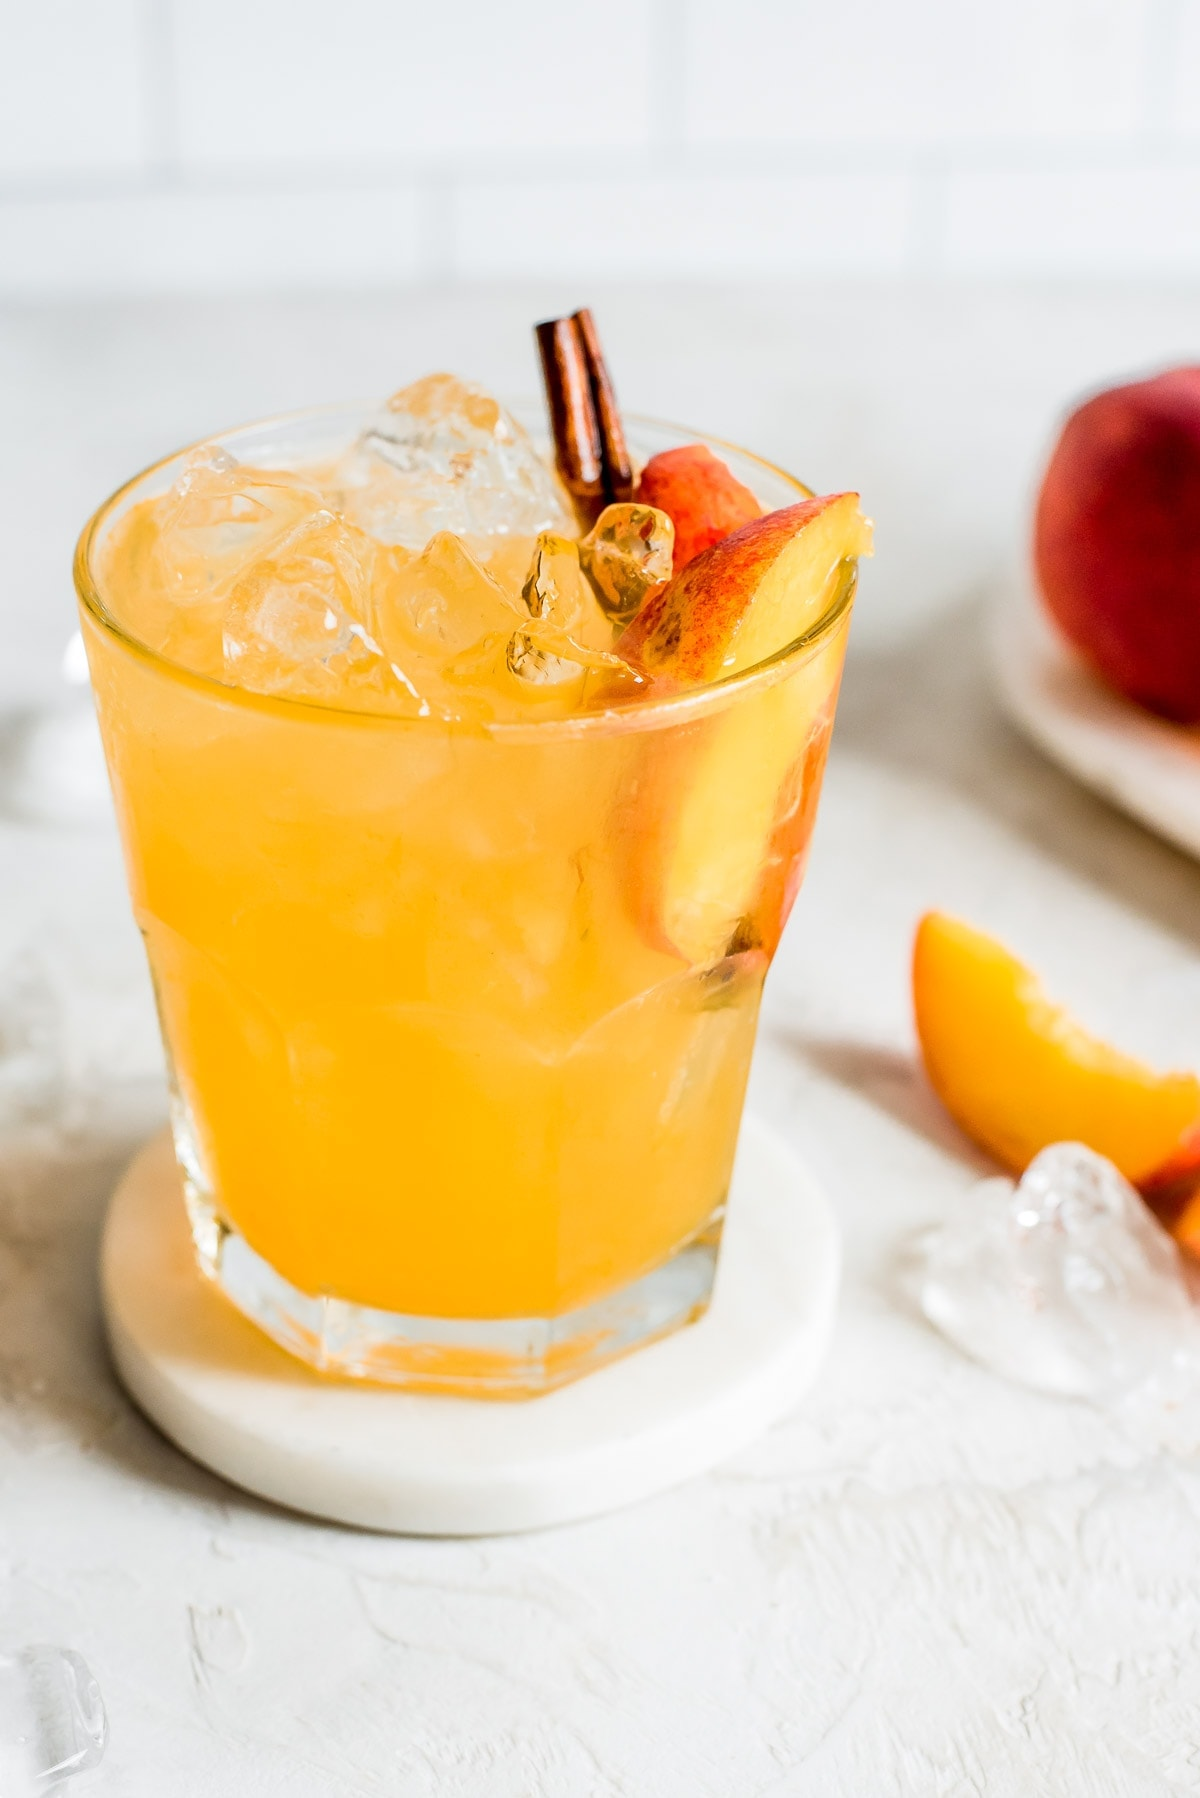 close up shot of moonshine with peach slice and cinnamon stick garnish